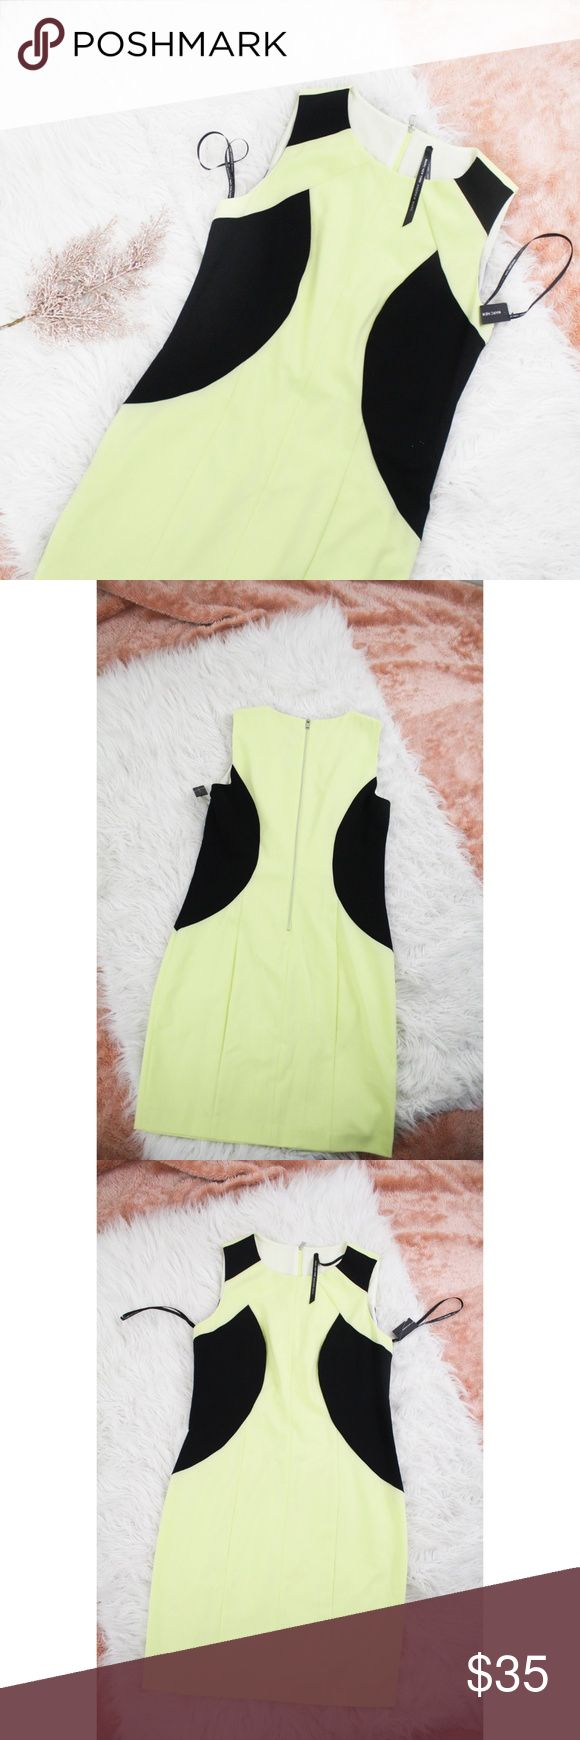 "NWT Andrew Marc Yellow Colorblock Sheath Dress Lovely, Andrew Mark dress in the colors neon yellow and black. Sleeveless.  Size: 8 Material: 63% polyester, 33% rayon, 4% spandex Measurements: Bust "" 34"", Length ""36 ""  **Feel free to message me asking any questions.  * All items are measured laying flat then doubled  * Comes from a smoke-free home Andrew Marc Dresses"